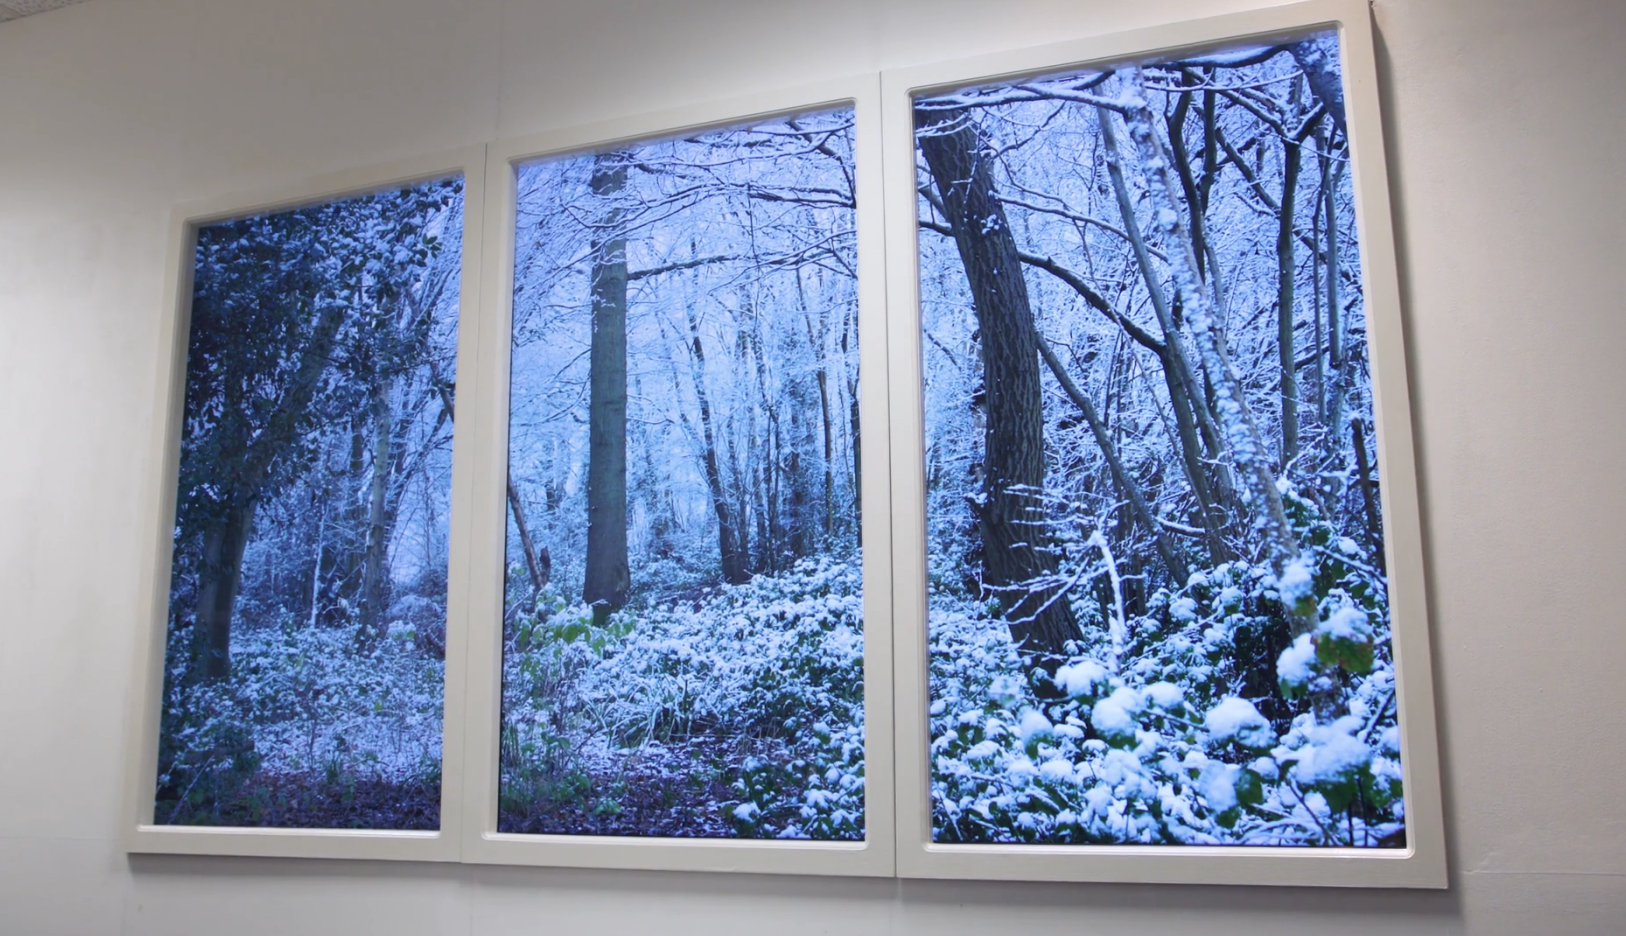 Artificial LED window with three panels showing snowy woodland